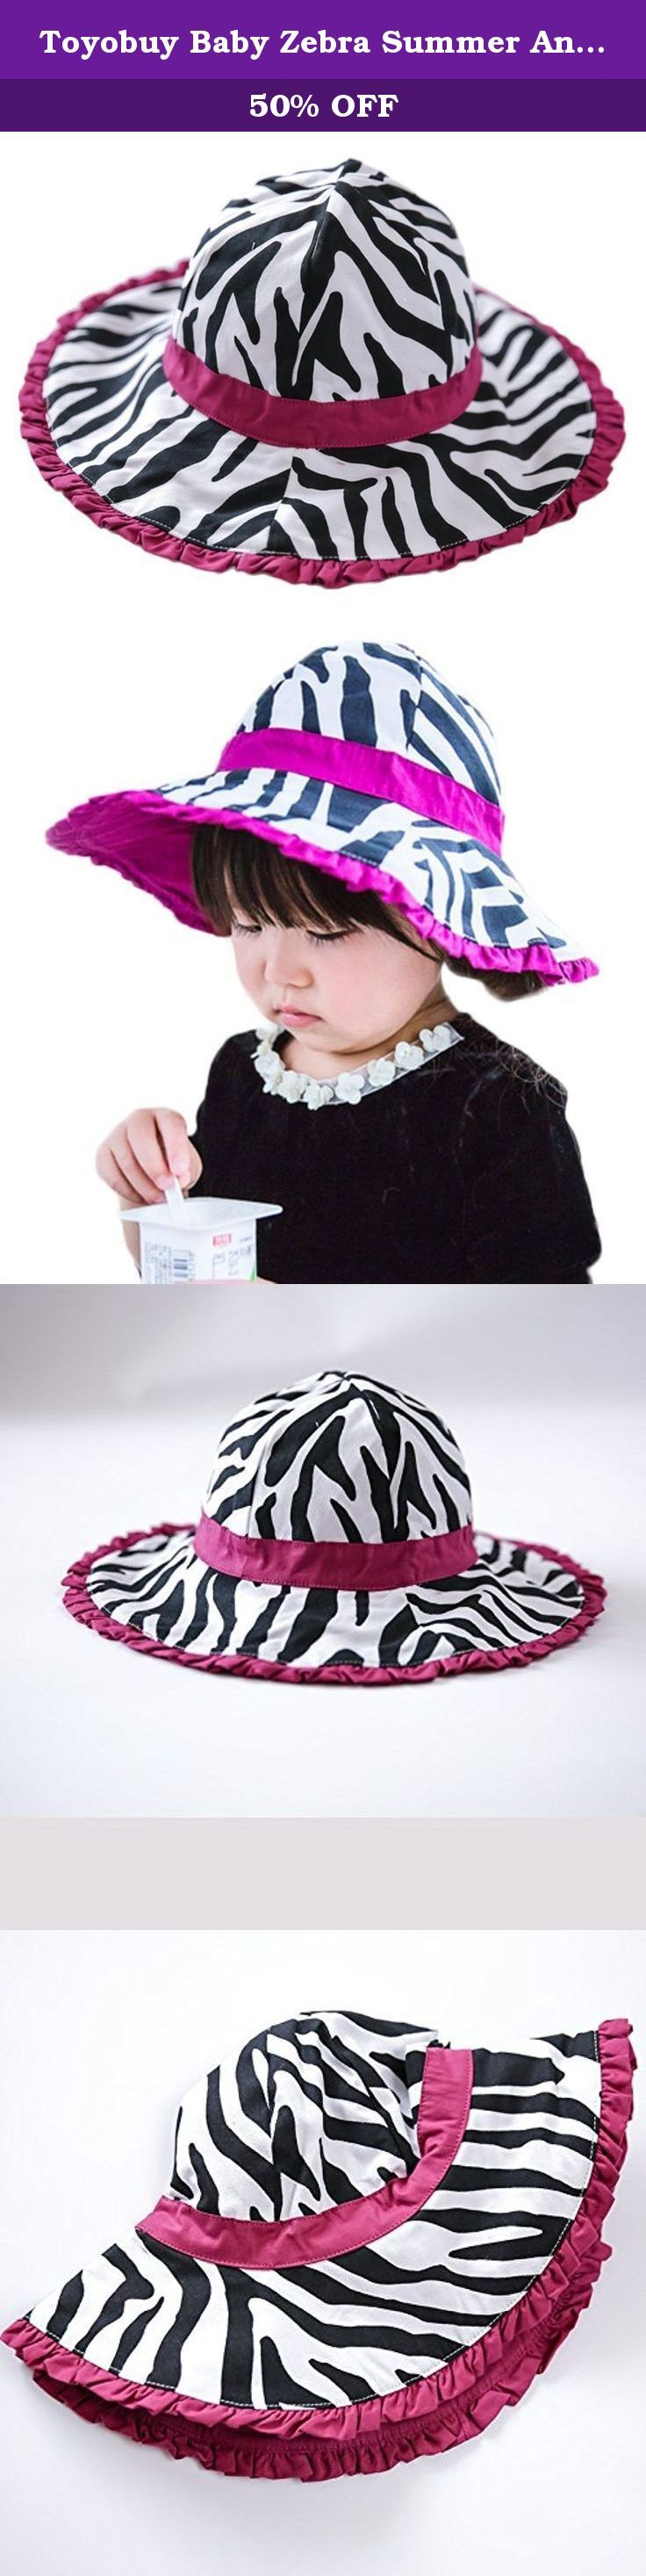 Toyobuy Baby Zebra Summer Anti UV Wide Brim Lace Sun Bucket Hat Purple 54CM. All figures are measured artificially, so please allow a little discrepancy Material: Cotton Size: Head Circumstance: 48cm(Suitable for 6-12 months baby) Head Circumstance: 50cm(Suitable for 1-2 years old baby) Head Circumstance: 52cm(Suitable for 2-4 years old baby) Head Circumstance: 54cm(Suitable for 4-6 years old baby) Color varies from different computer screens Before you place the order, please think about…